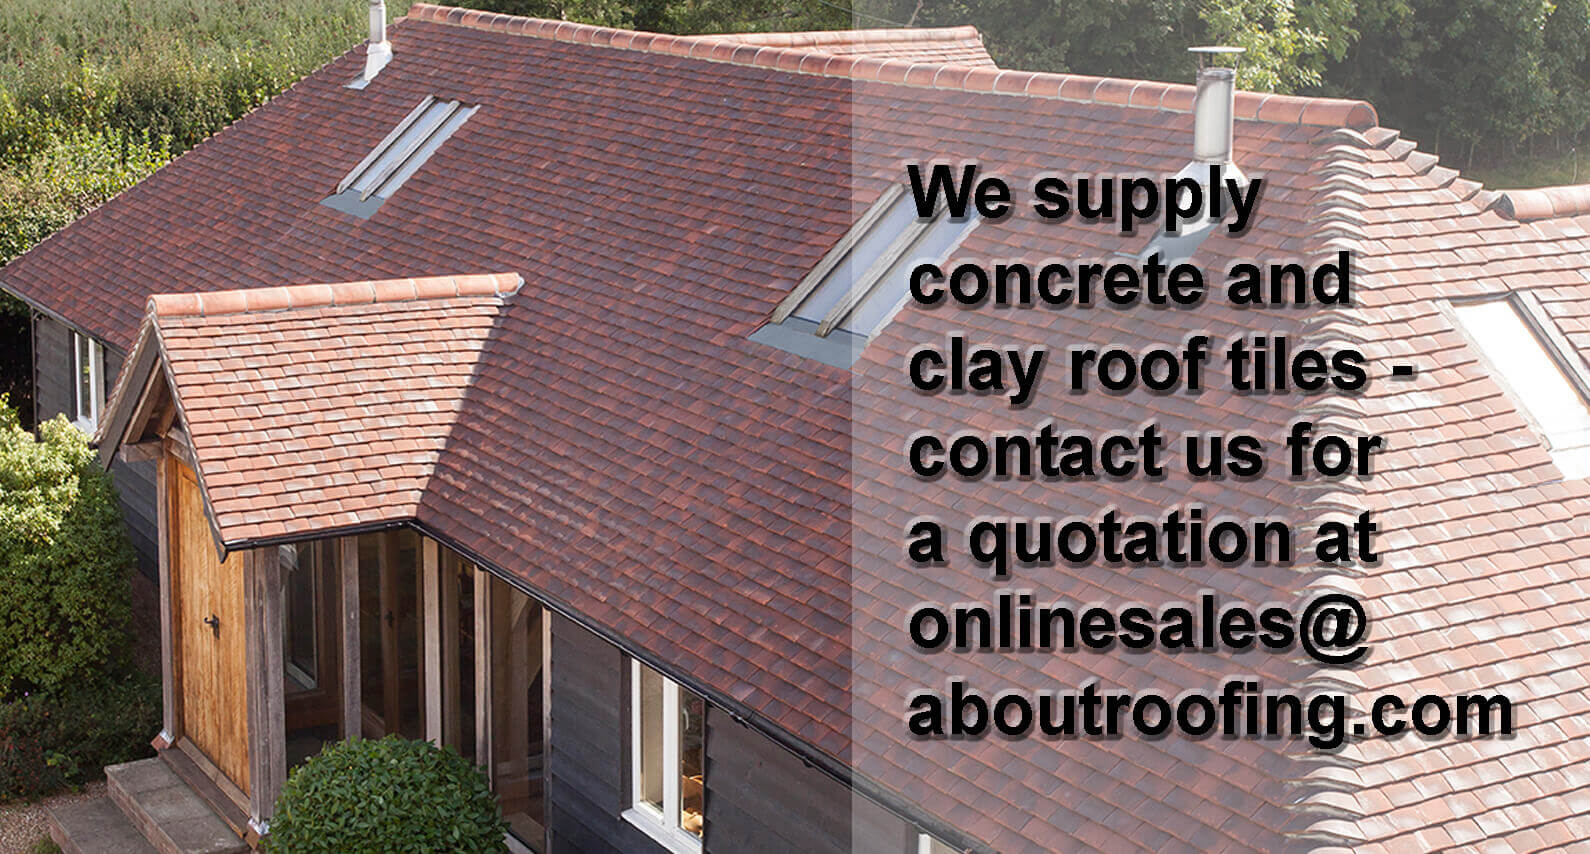 About Roofing Supplies supply concrete & clay roof tiles